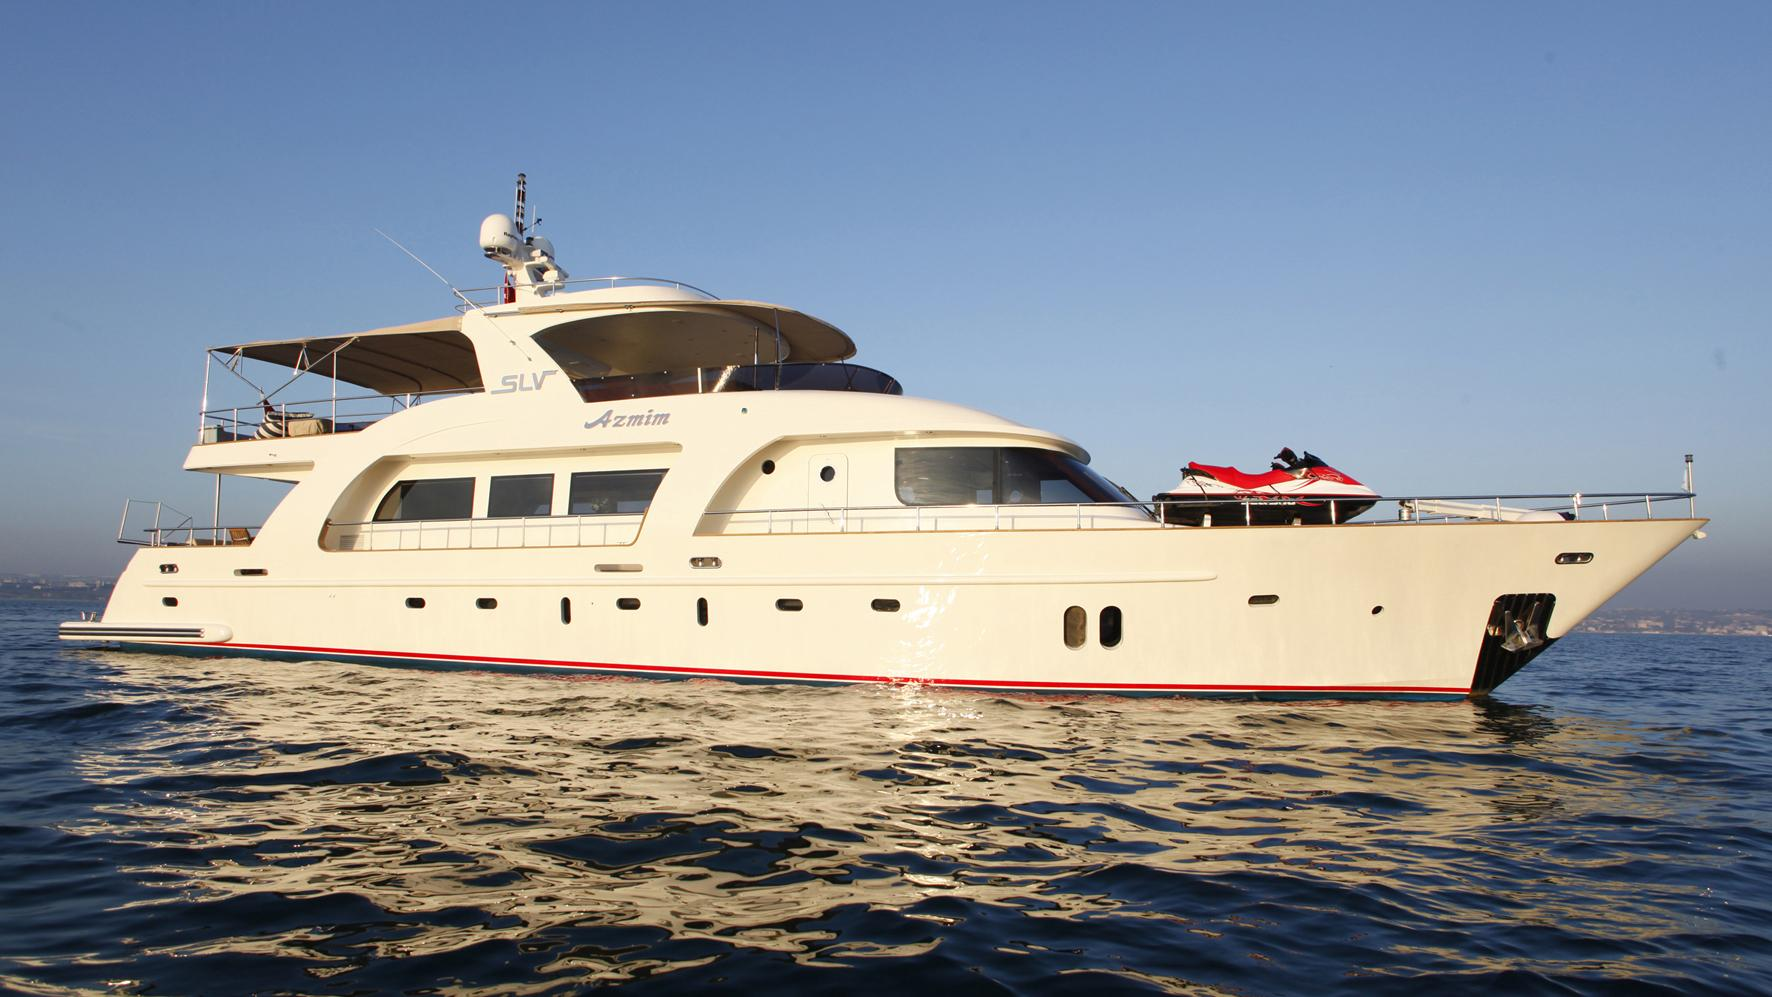 azmim-yacht-for-charter-profile